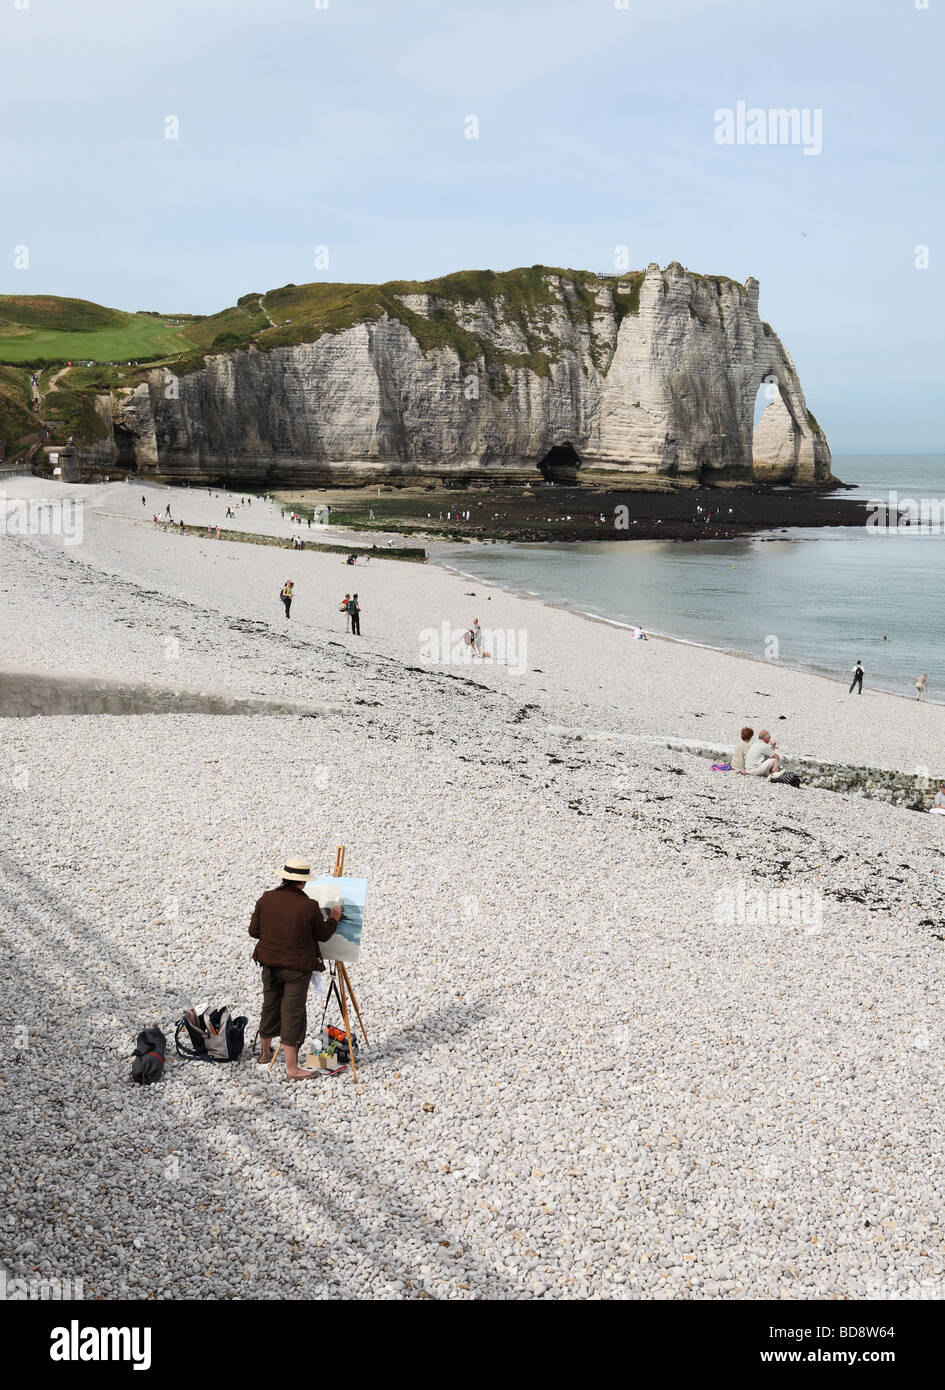 An artist making a painting of the cliffs including the Falaise d'Aval or arch and the Aiguille or needle at - Stock Image